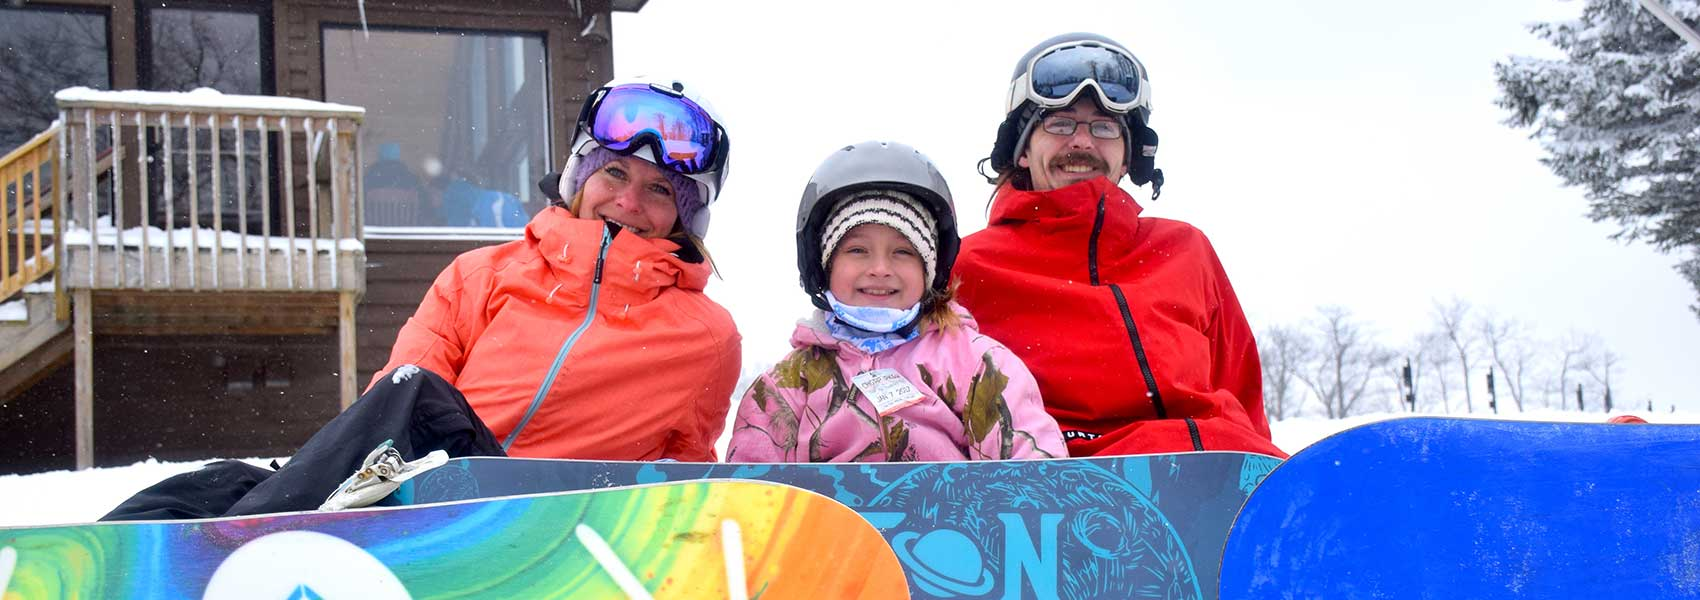 family-of-snowboarders-sitting-on-snow-in-front-of-lodge